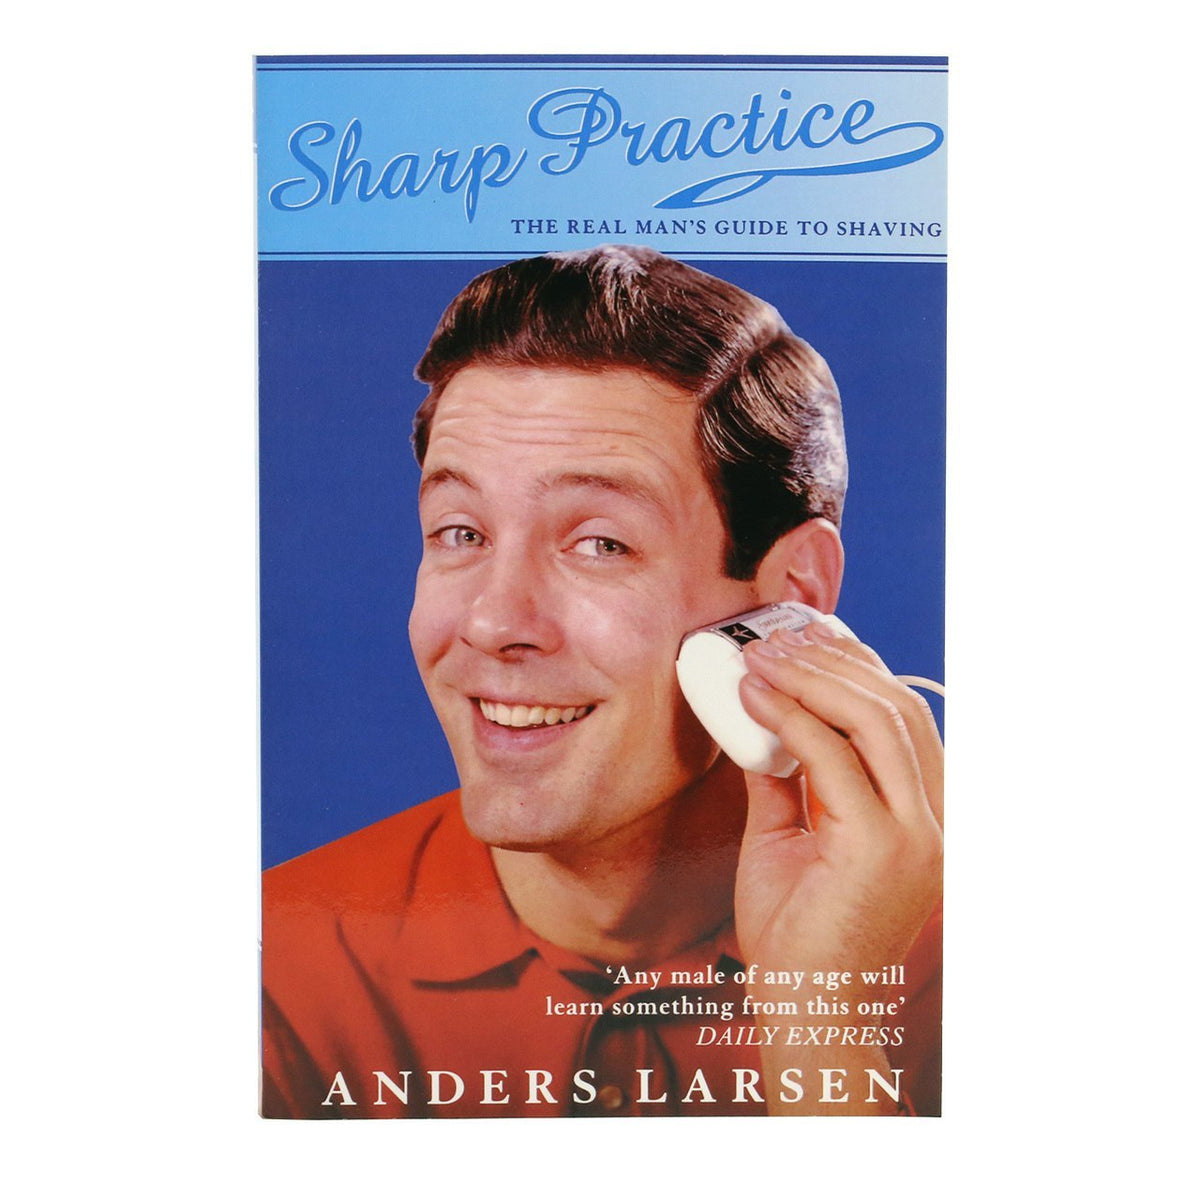 Sharp Practice: The Real Man's Guide to Shaving by Anders Larsen